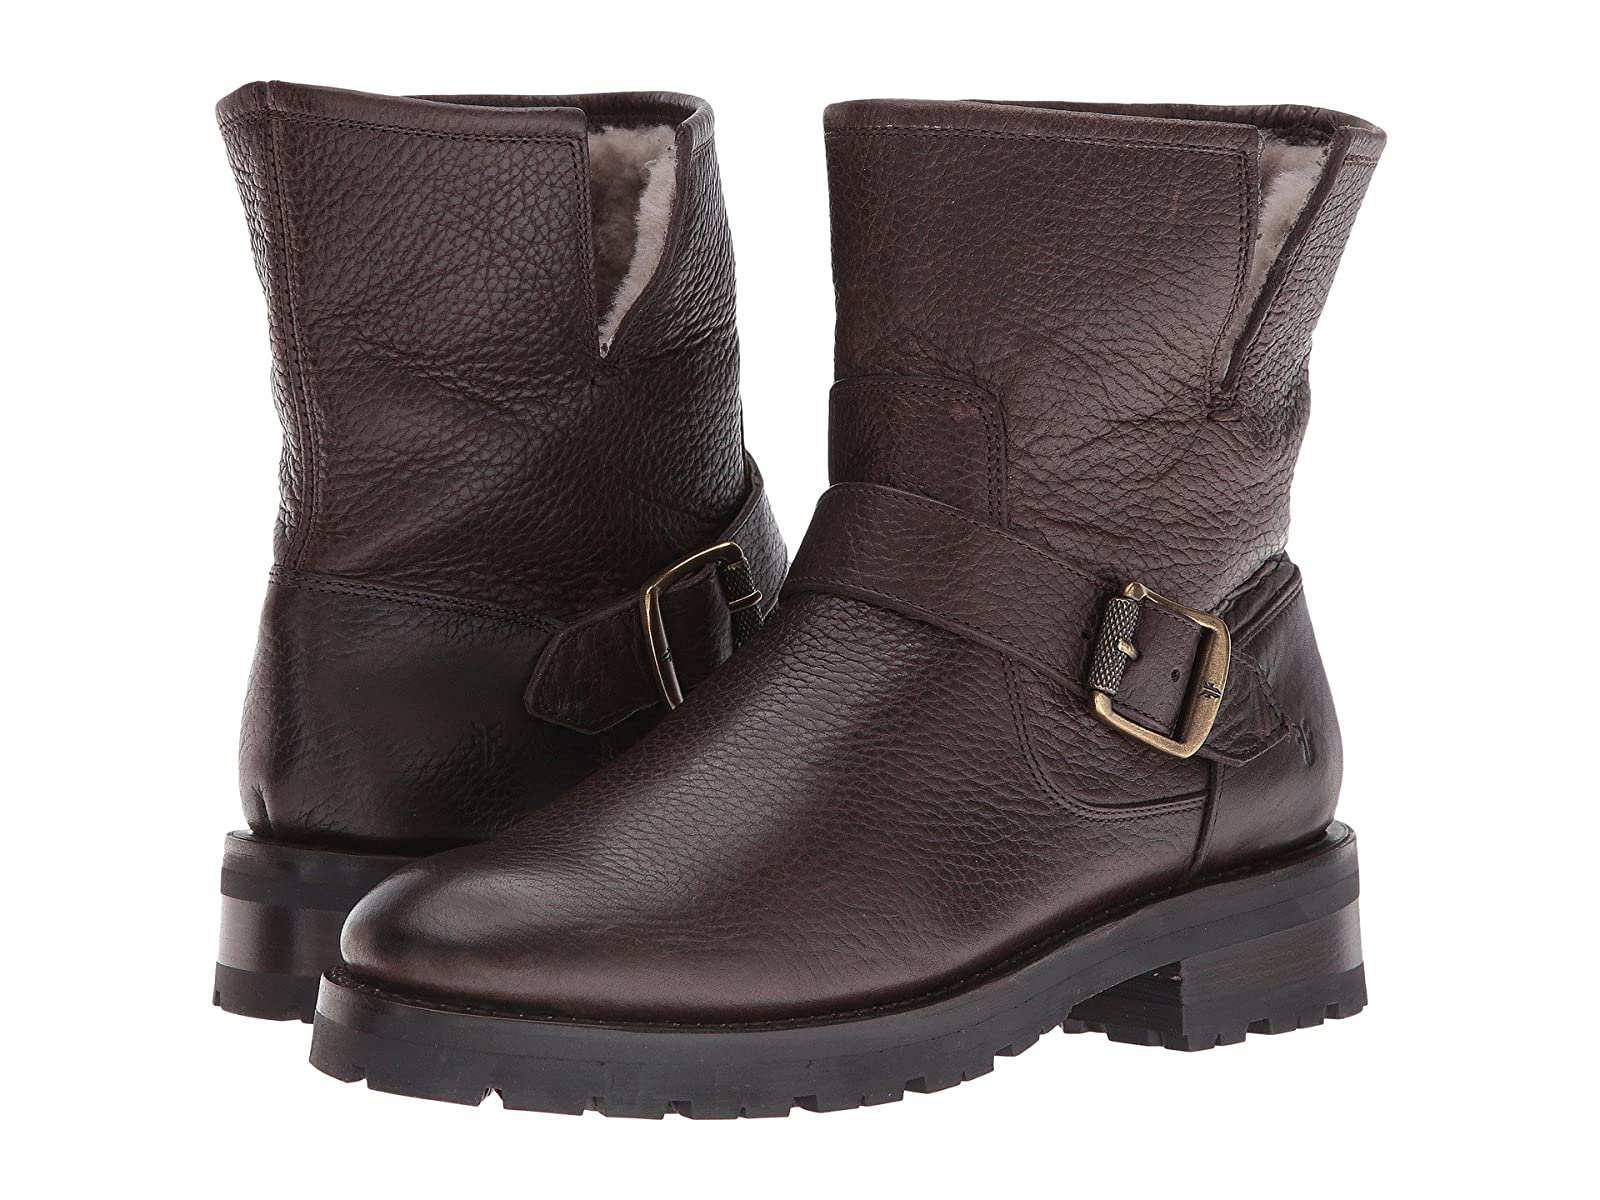 Frye Natalie Short Engineer LugCheap and distinctive eye-catching shoes